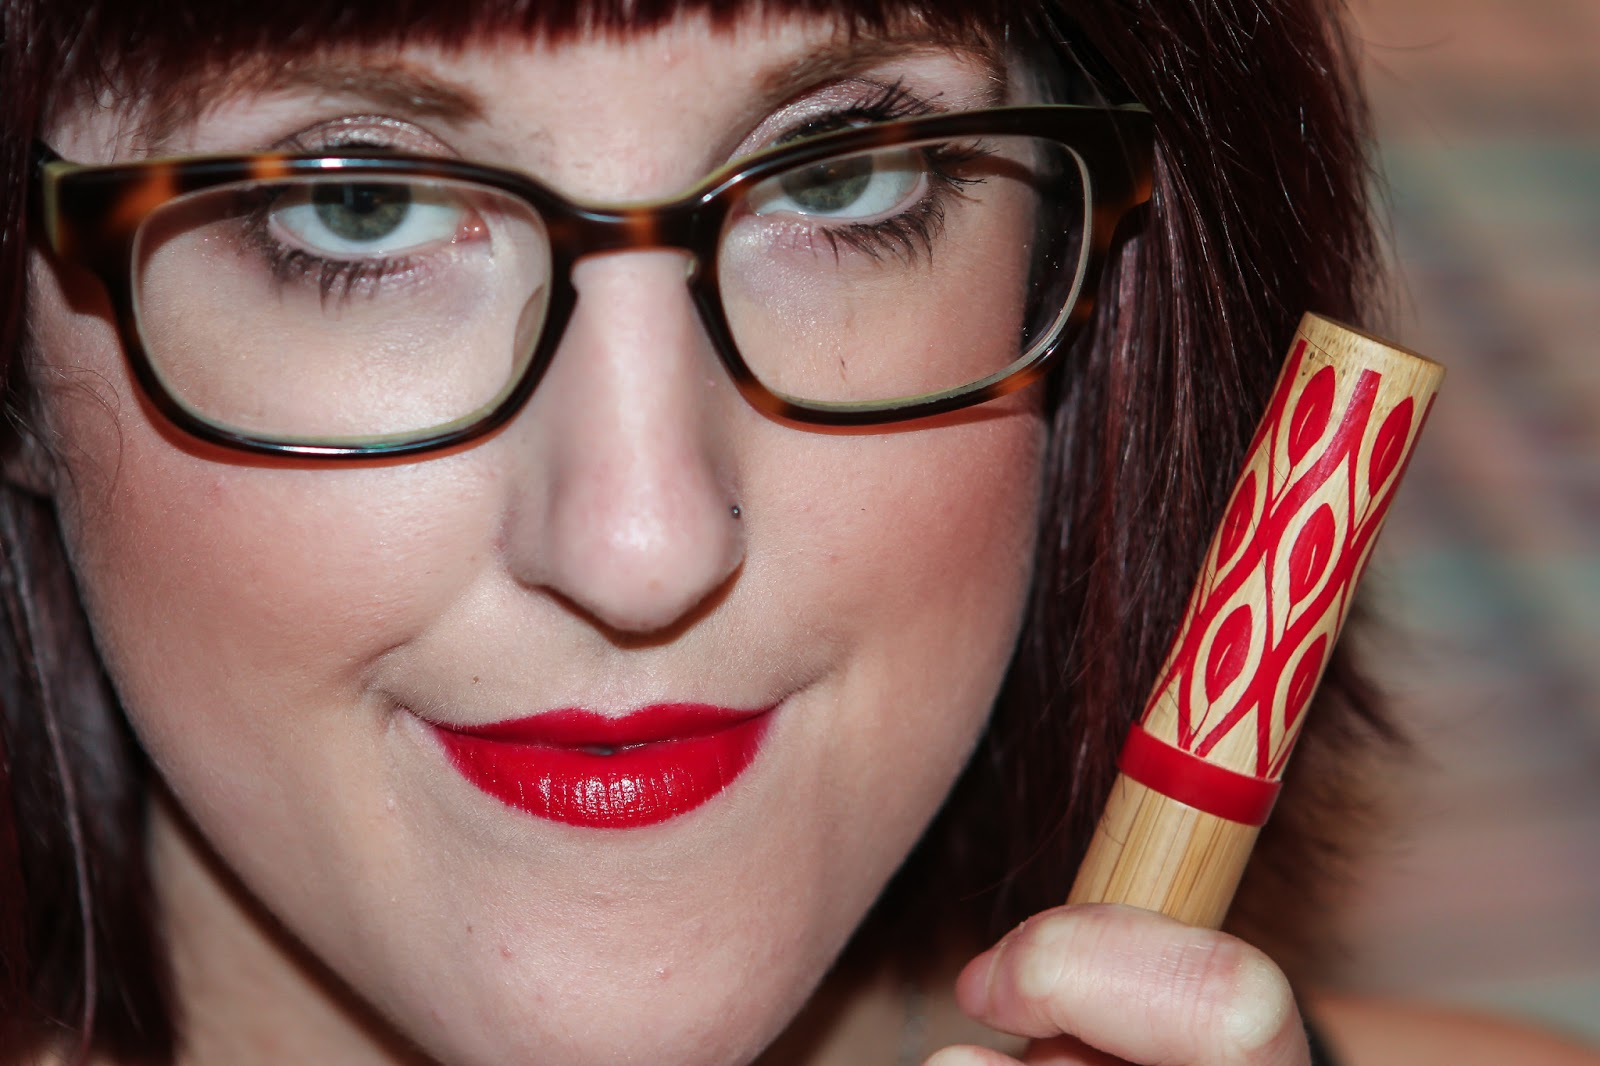 Abby Williamson: Red Lip Series: Tarte Glamazon in Wild!